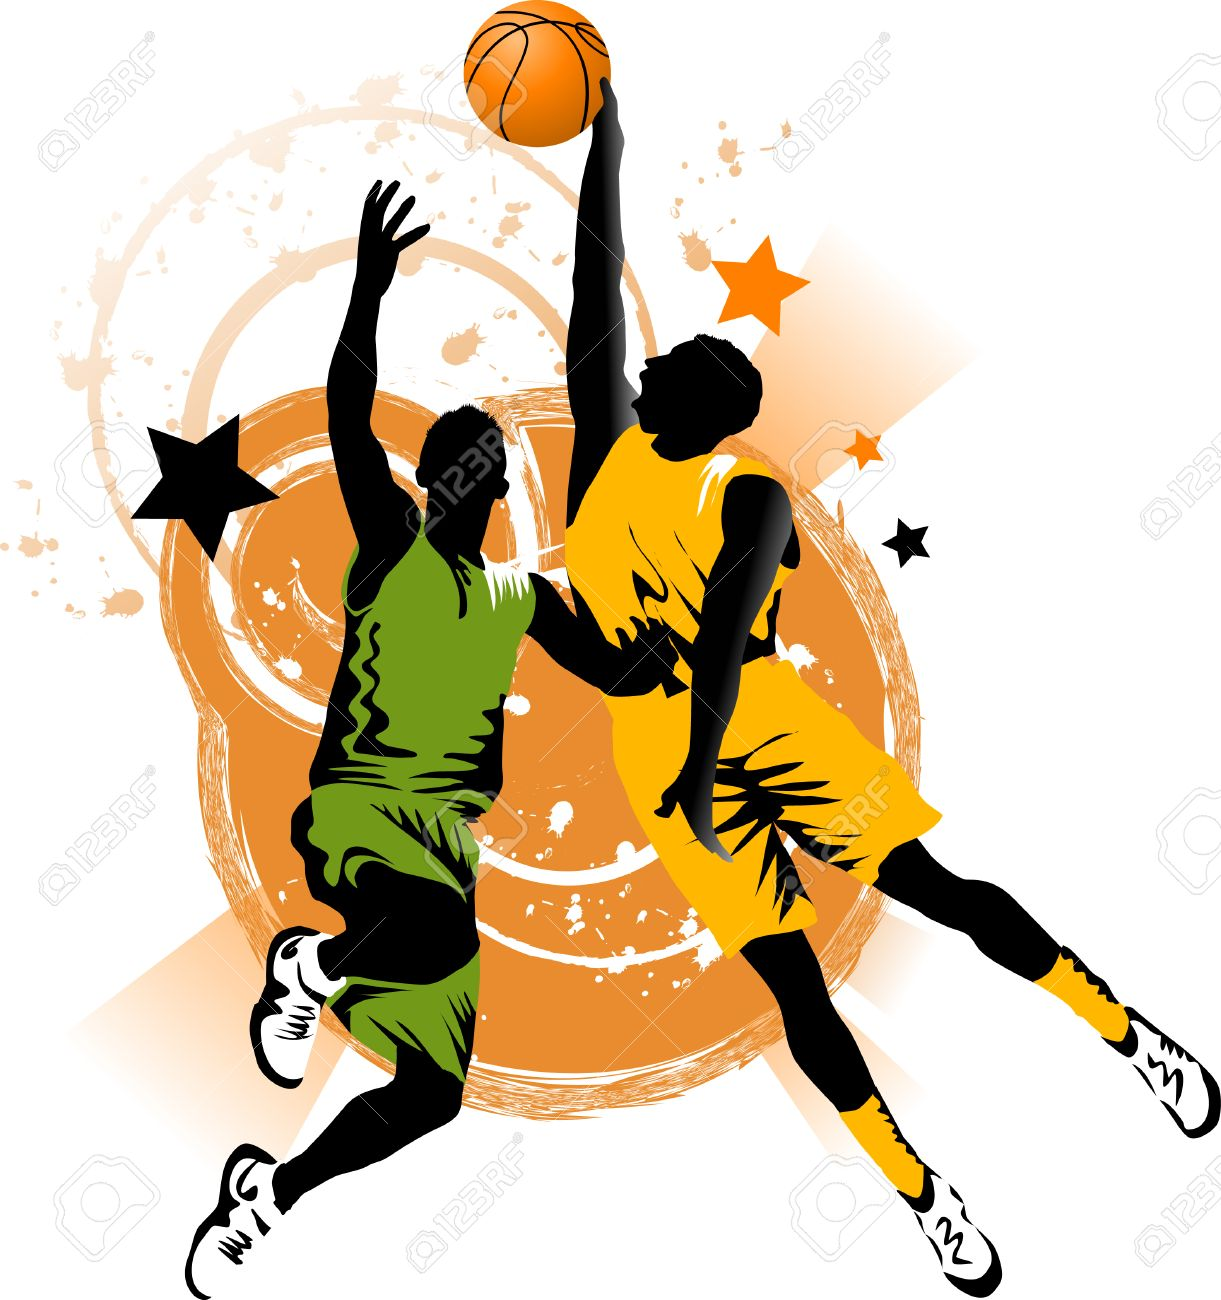 Basketball clipart basketball game. Cliparts free download best